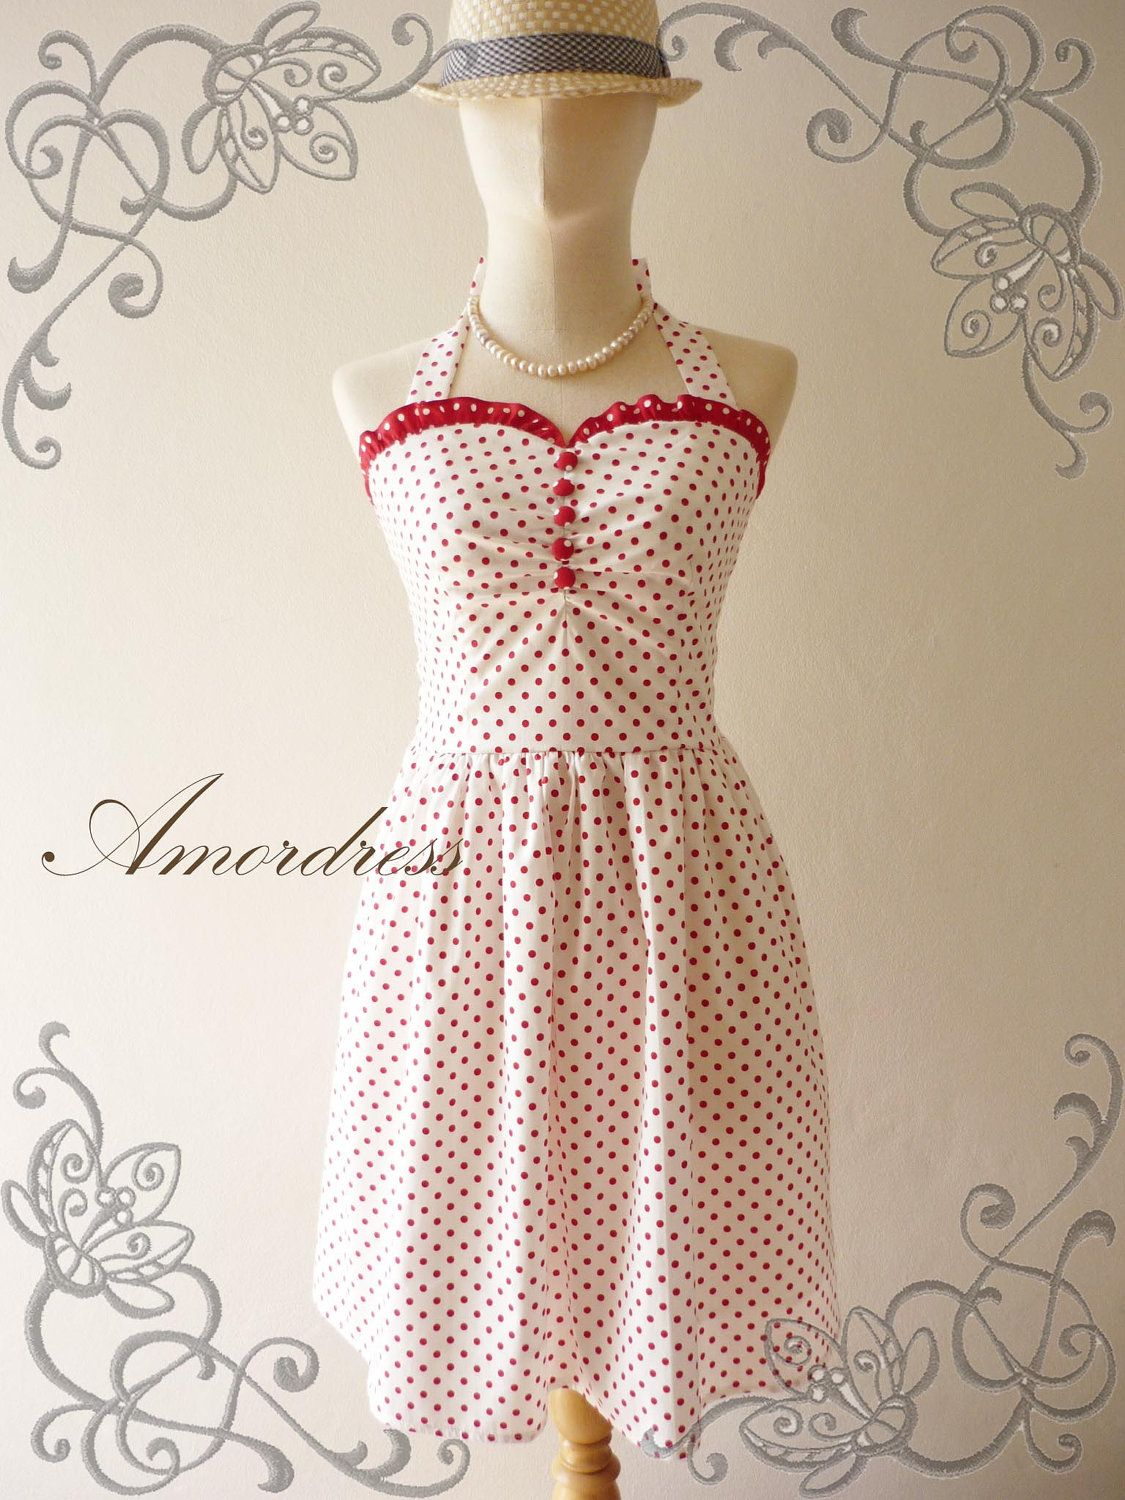 NEW For Bright SUMMER Amor Vintage Inspired Once Upon by Amordress. $52.00, via Etsy.